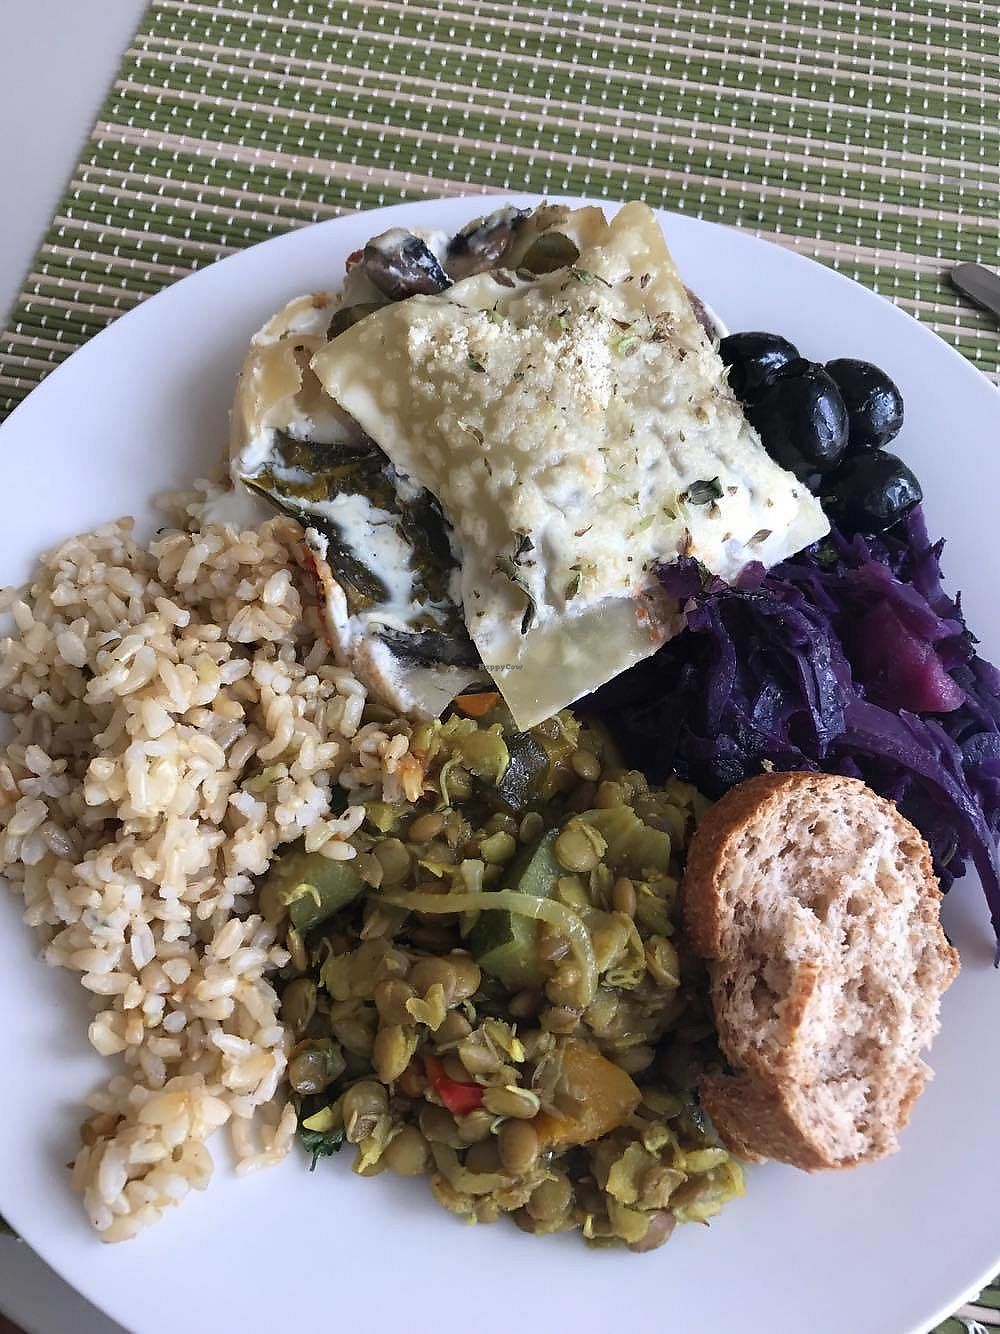 """Photo of Bosque  by <a href=""""/members/profile/Lara-RoseTadman"""">Lara-RoseTadman</a> <br/>Mushroom and spinach lasagna (amazing) with red cabbage, rice and lentils YUM  <br/> April 15, 2018  - <a href='/contact/abuse/image/106384/386373'>Report</a>"""